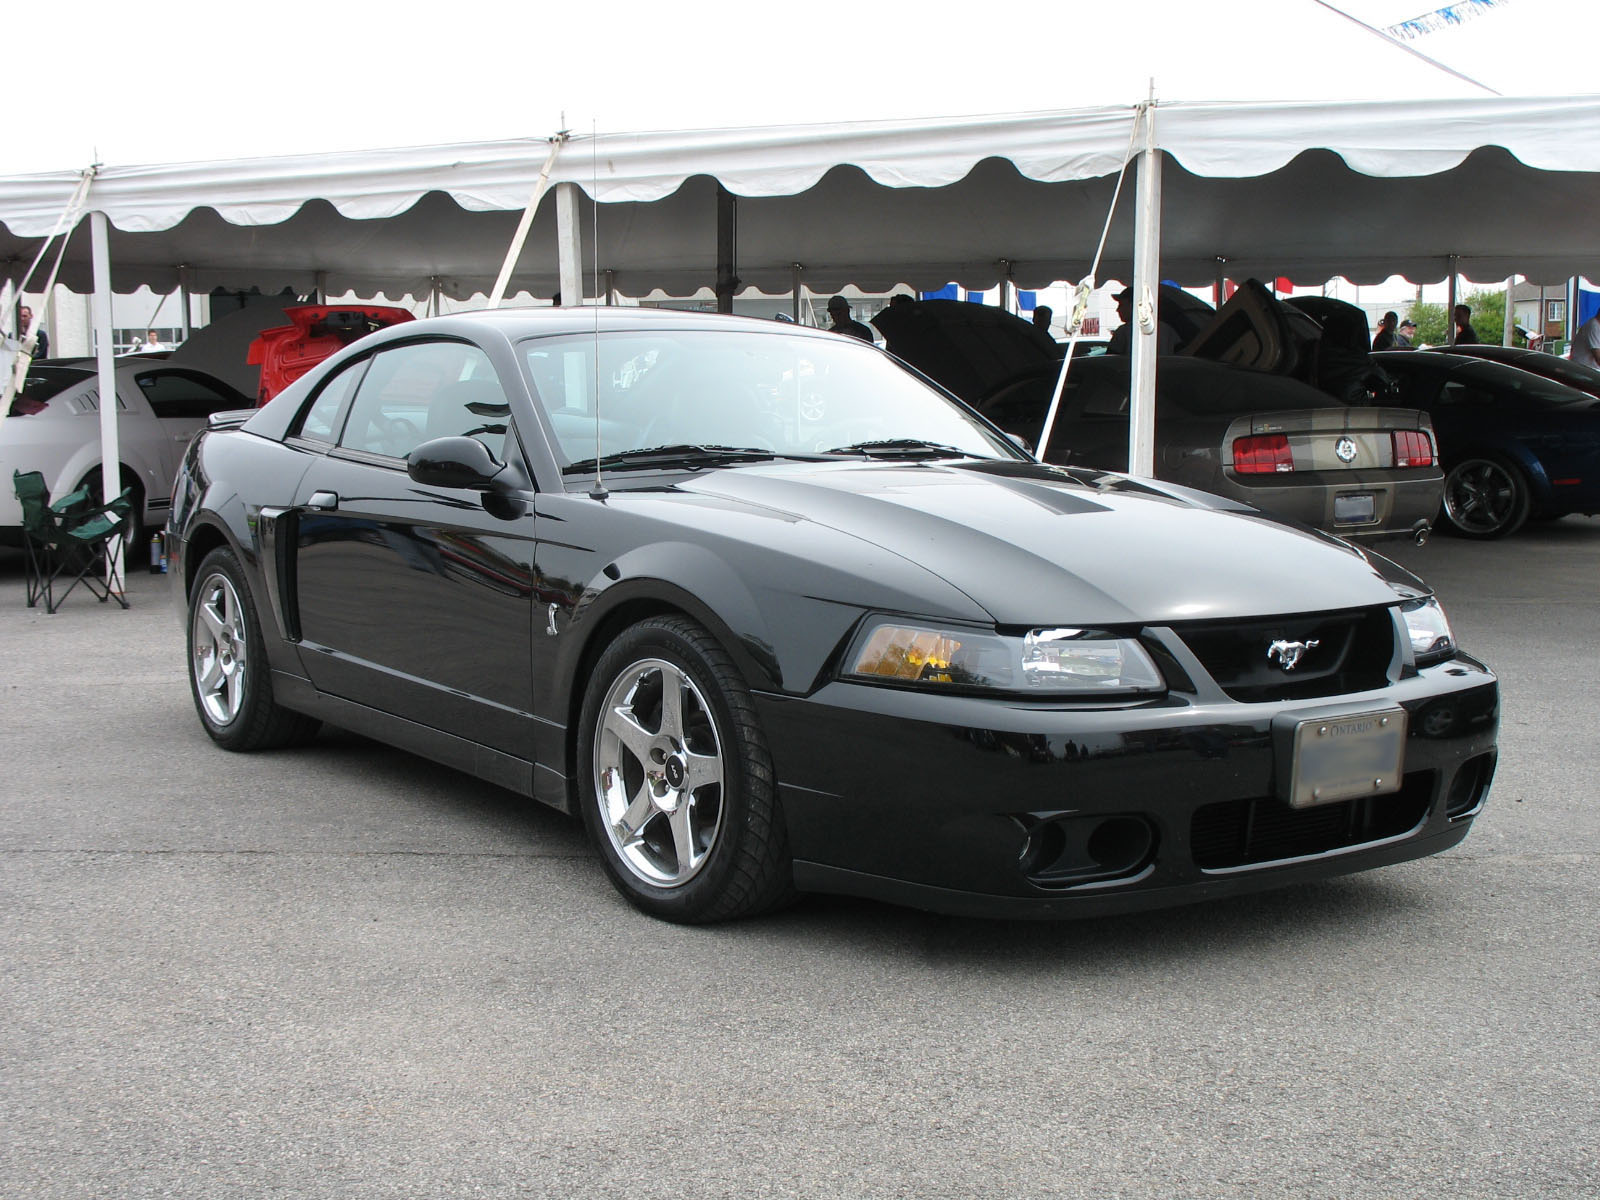 2003 Ford Mustang Cobra - The Terminator